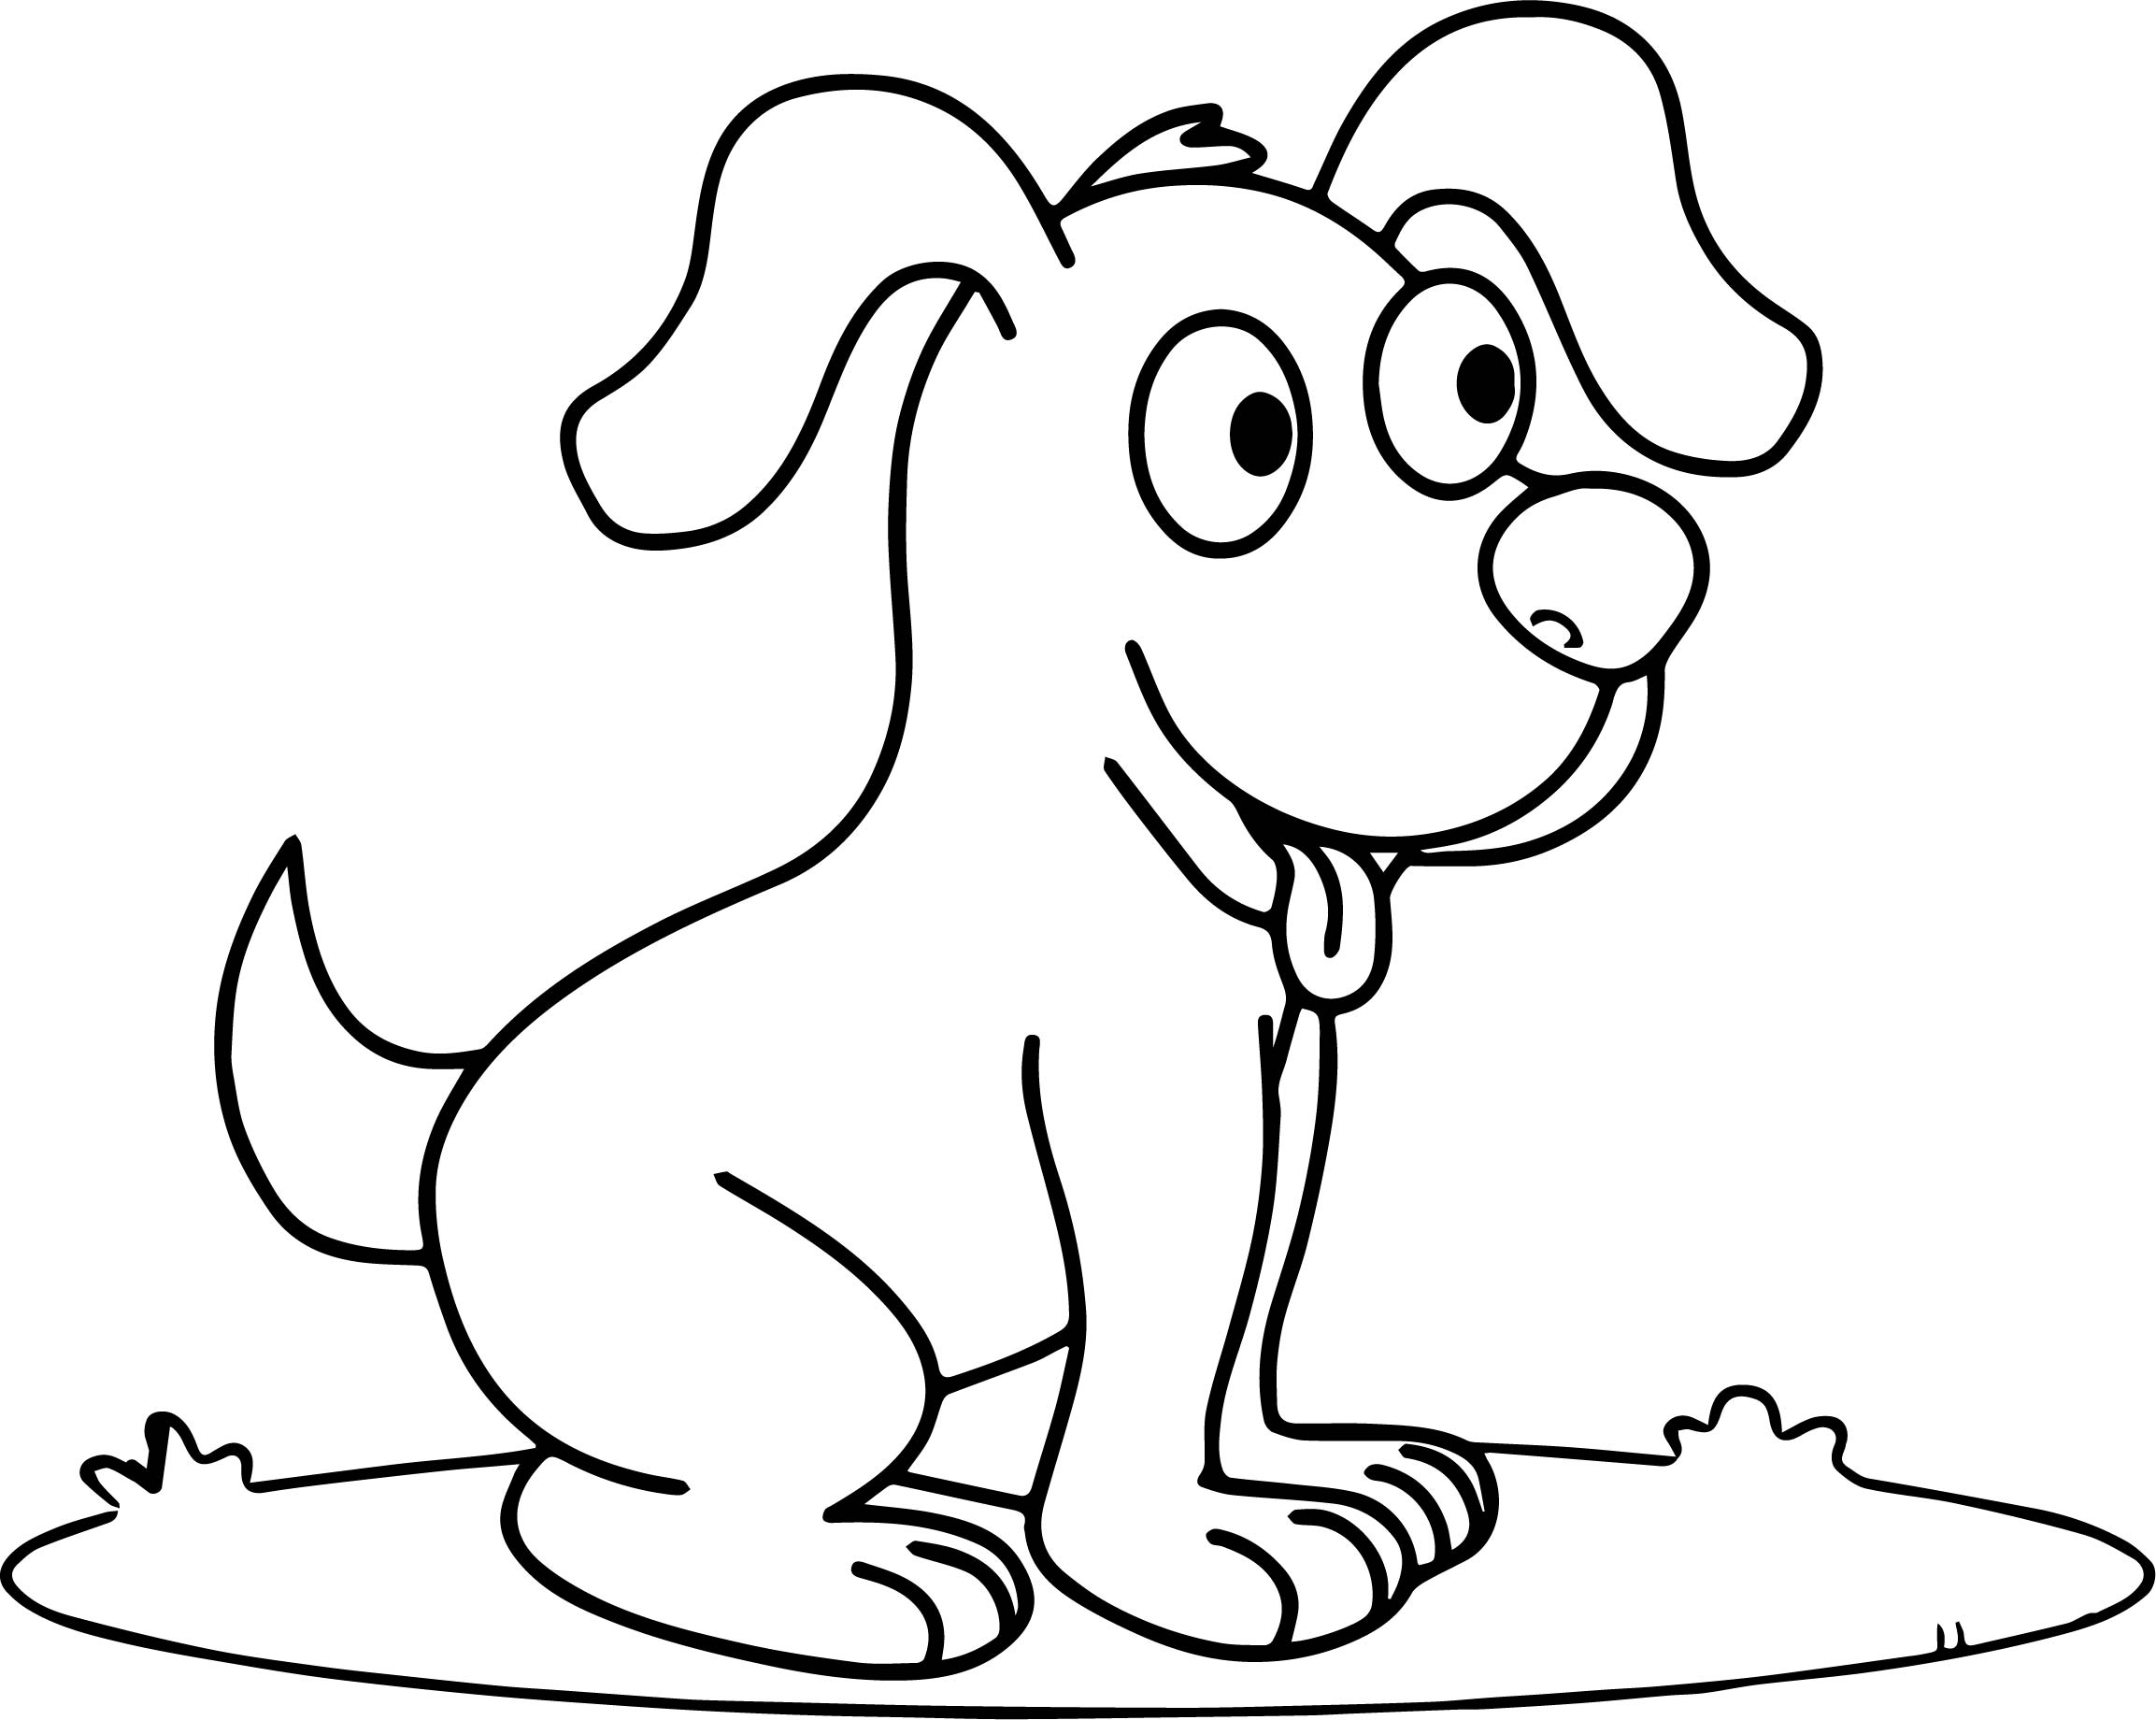 cute happy smiling puppy puppy dog coloring page wecoloringpage